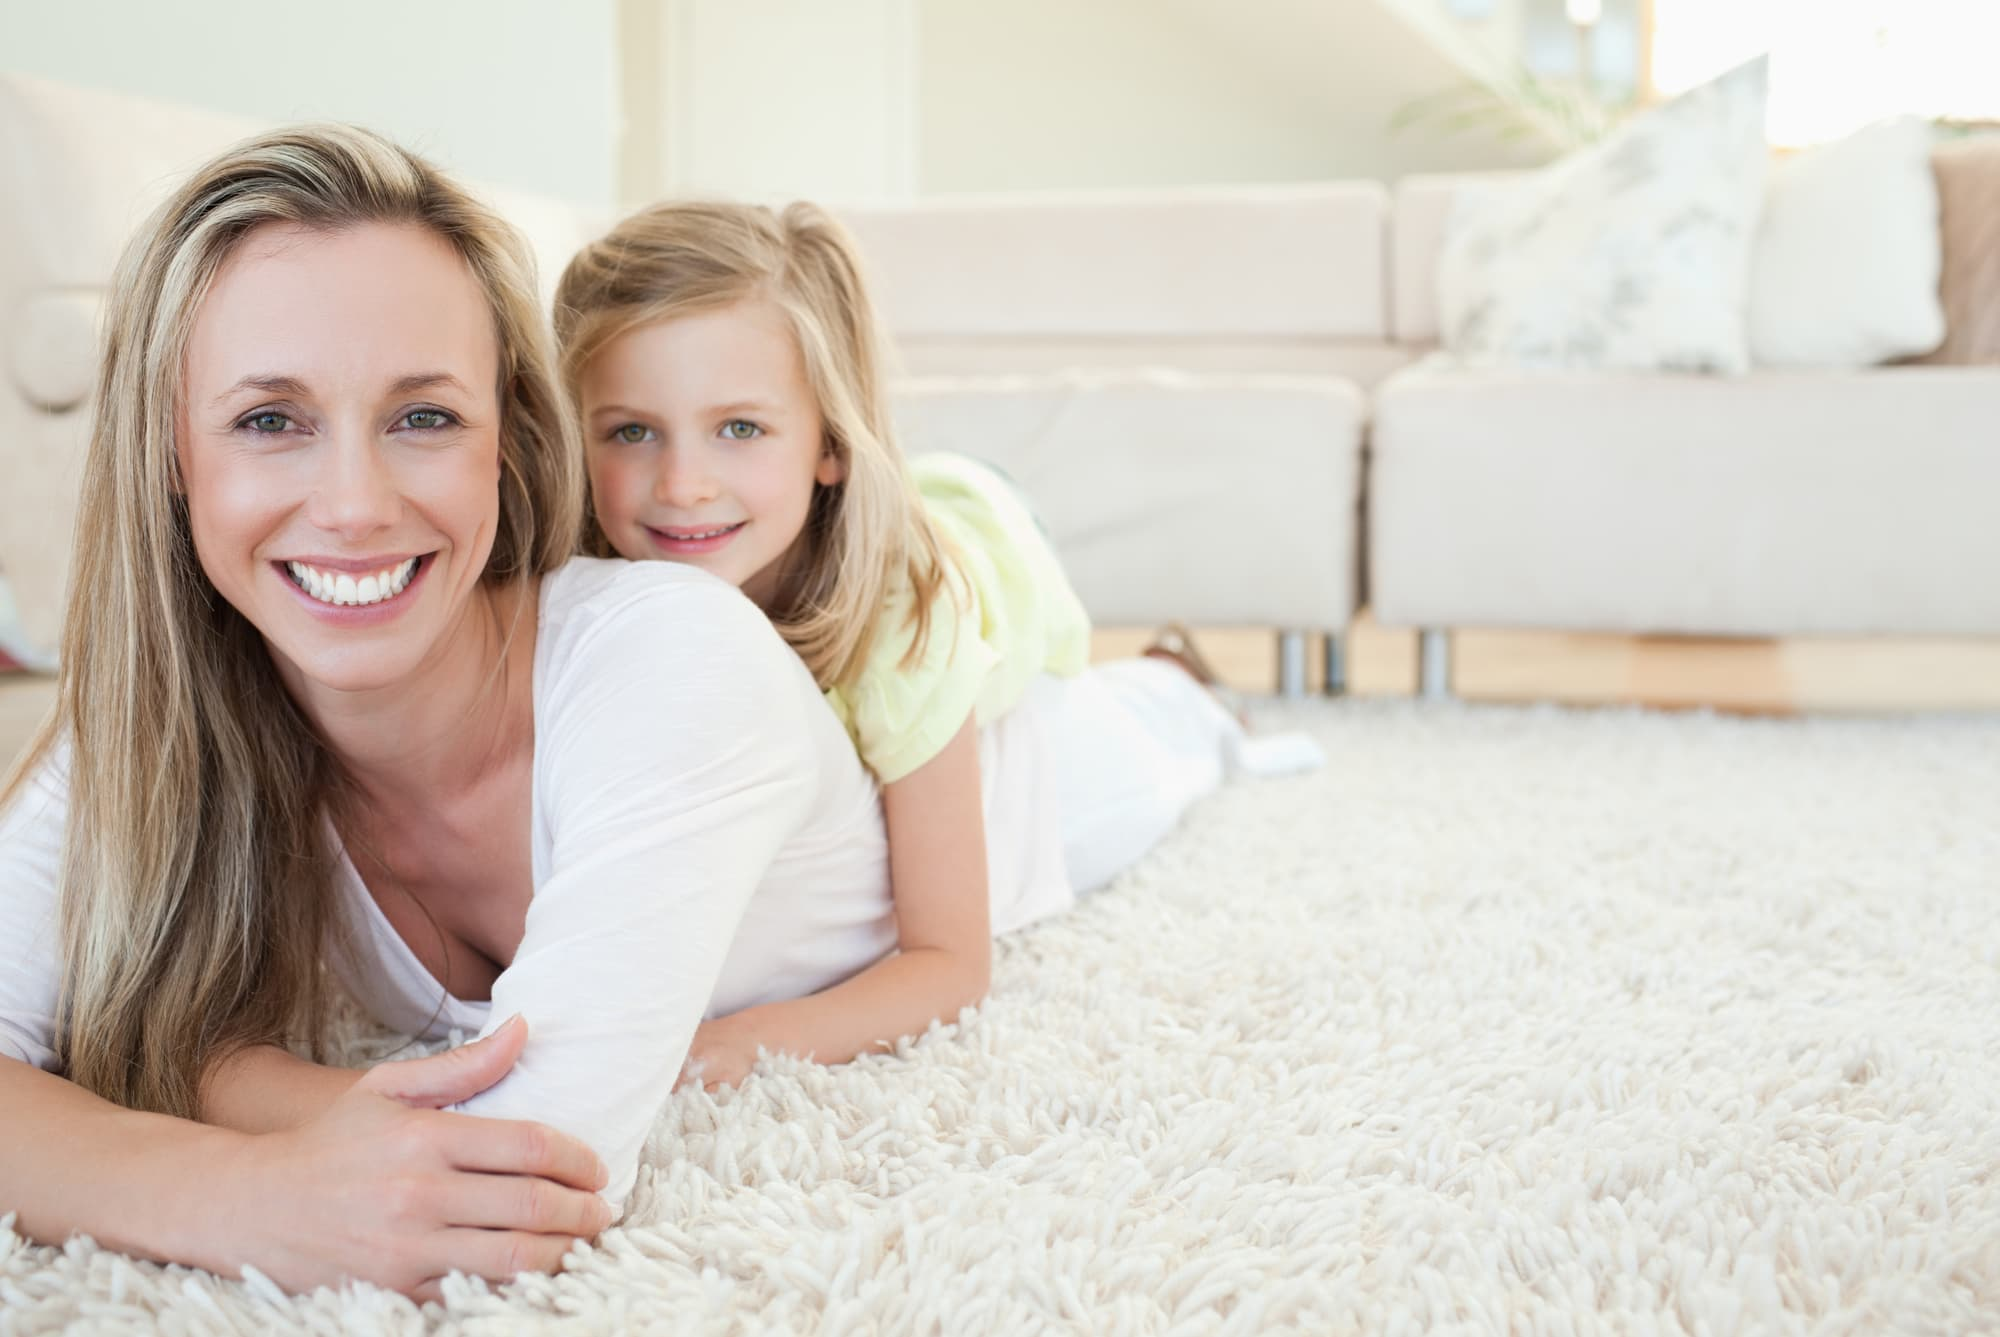 mother and daughter laying on clean white carpet